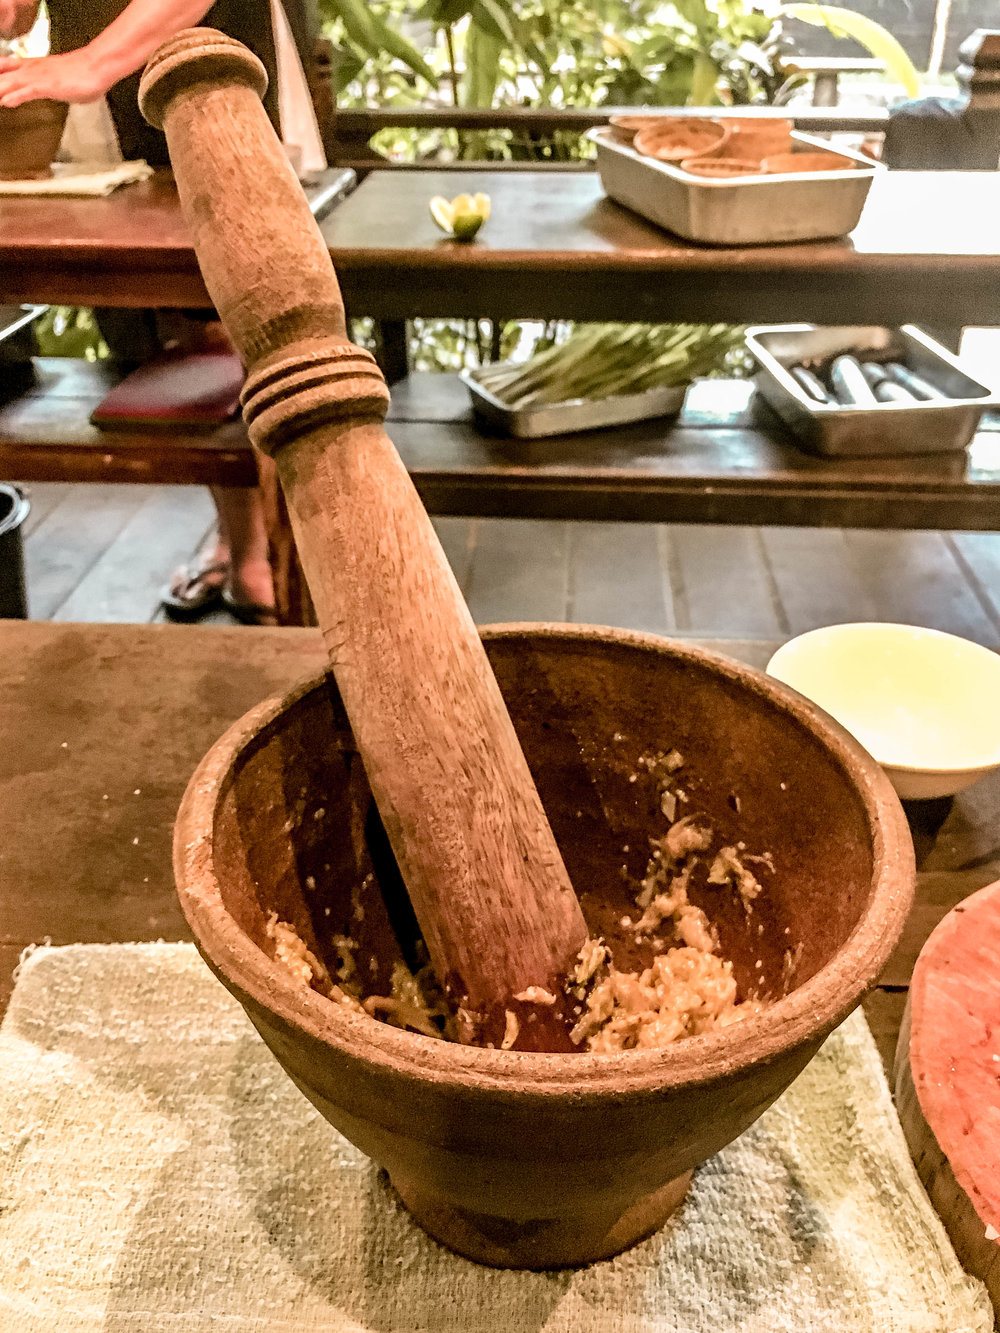 TRADITIONAL PESTLE AND MORTAR METHODS FOR MAKING JEOW